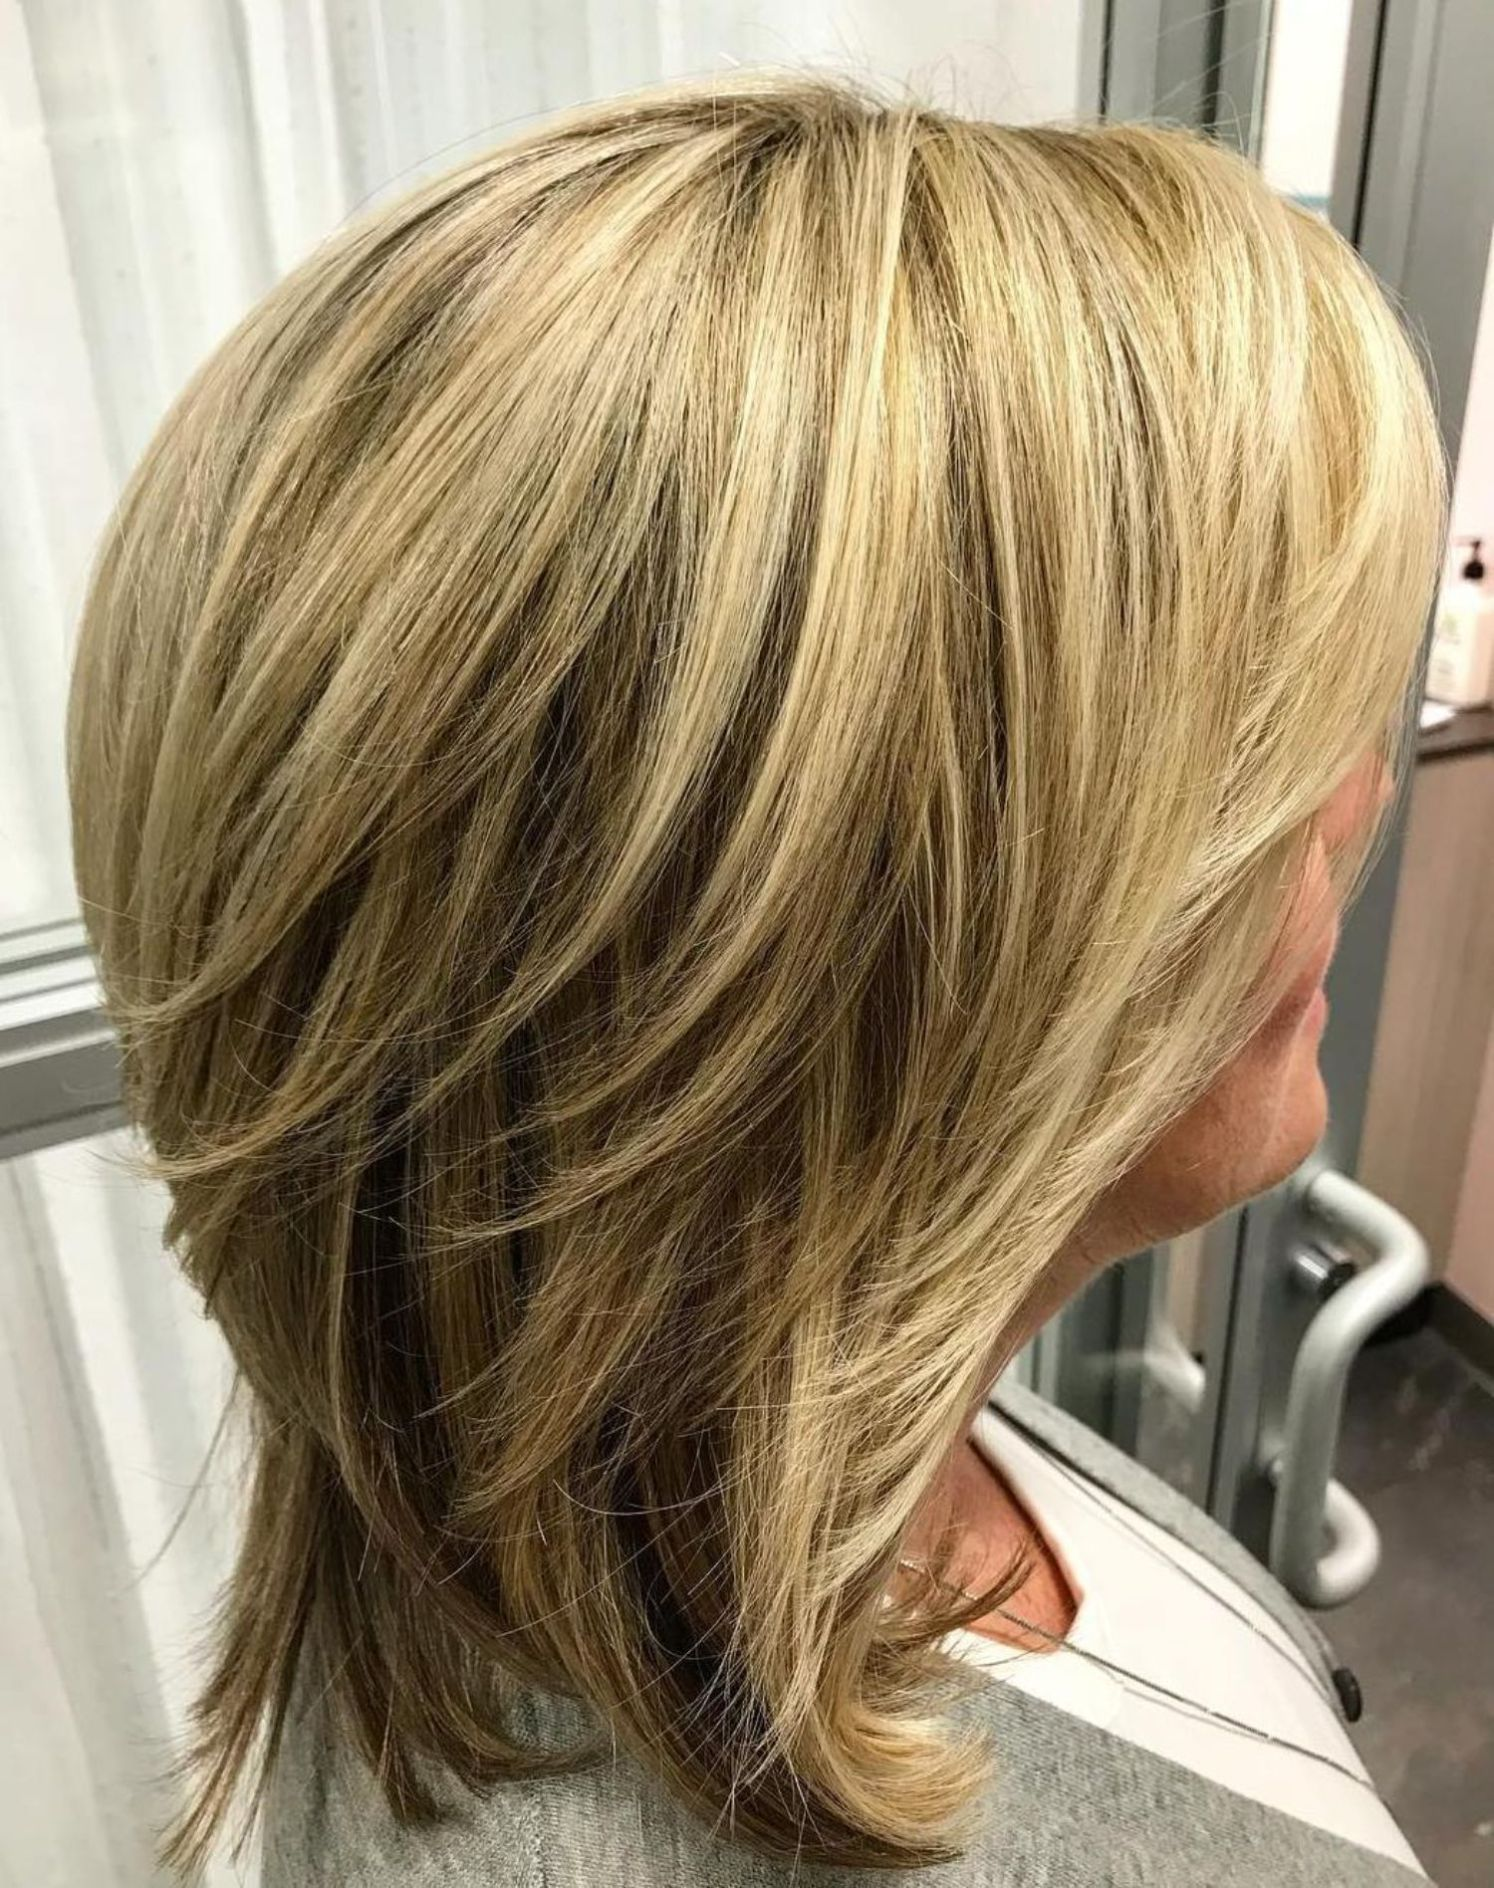 16++ What is the best hairstyle for over 70 inspirations